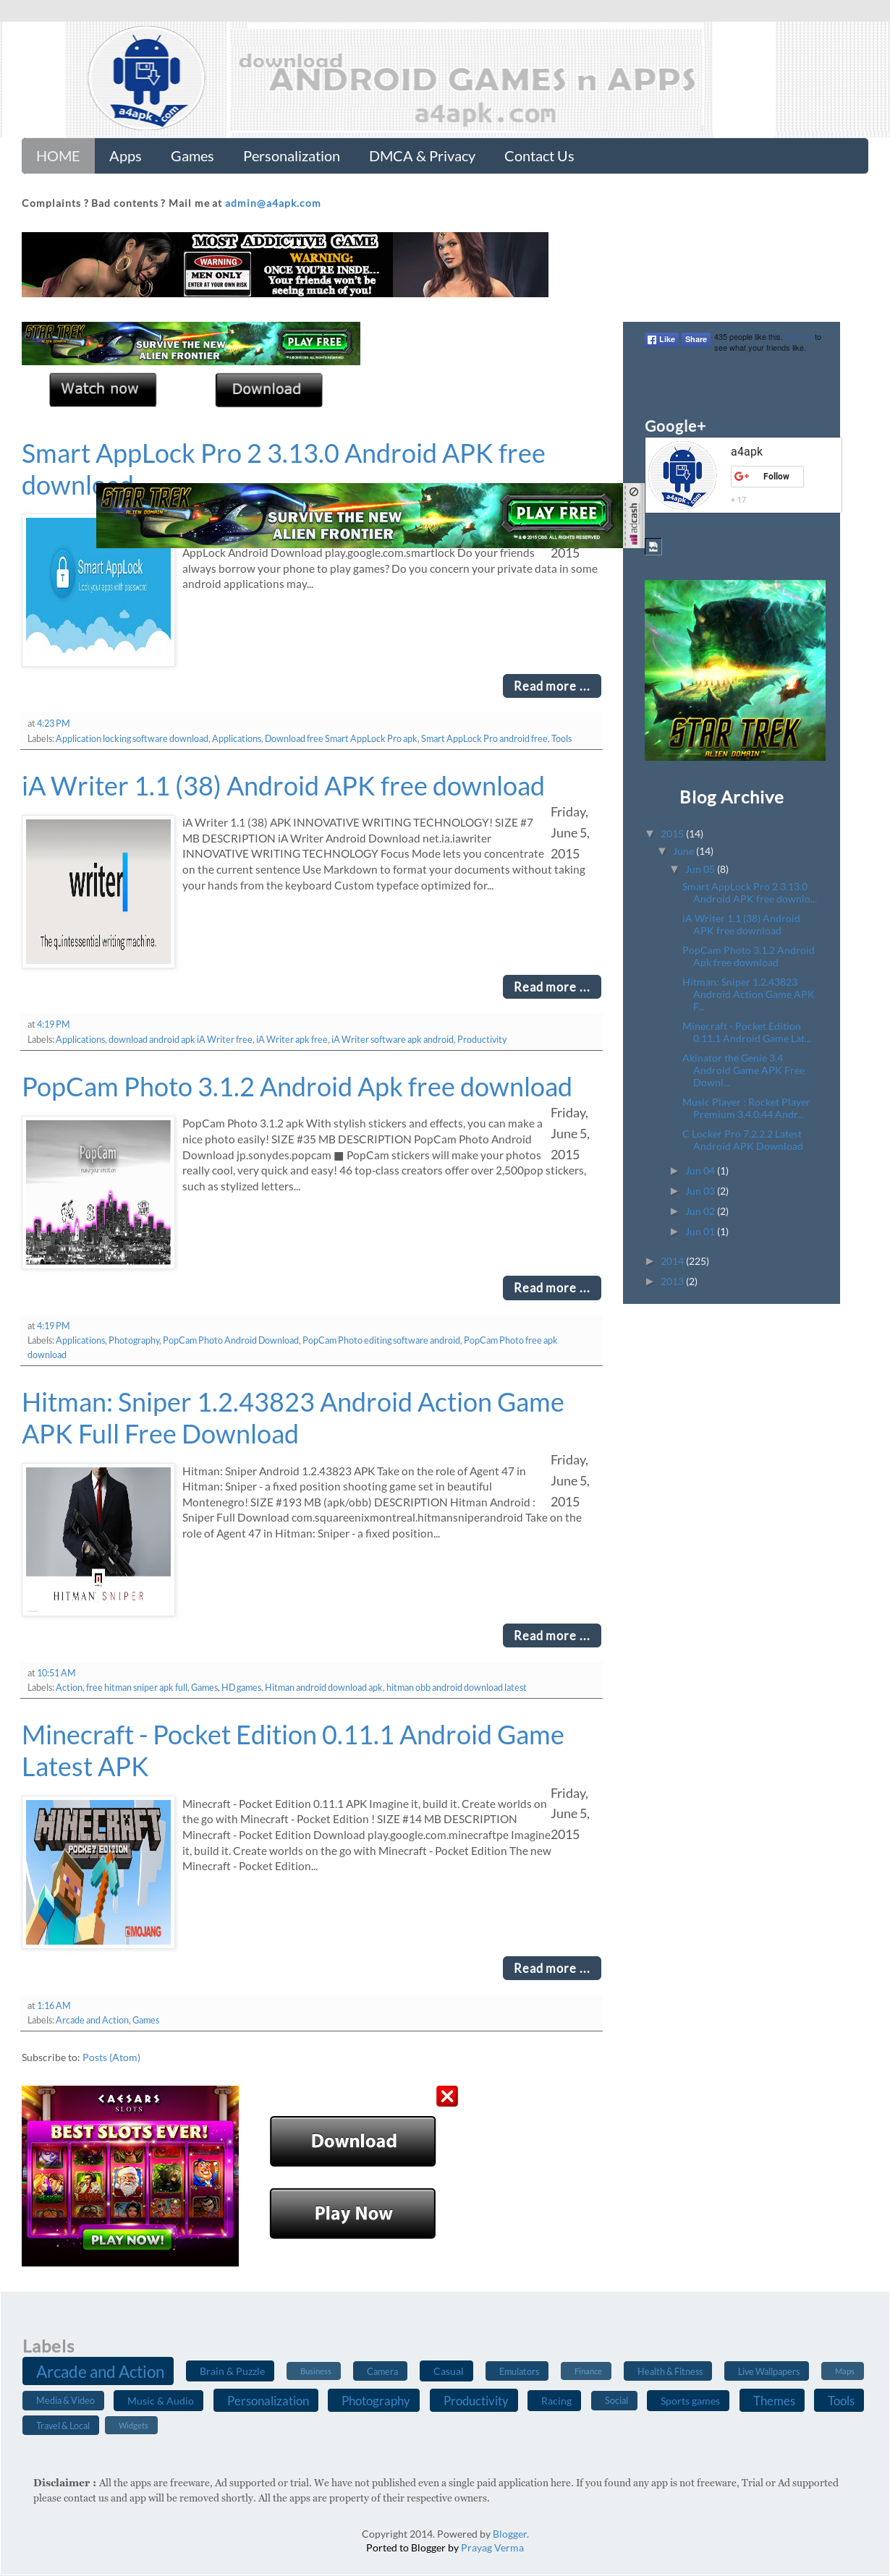 A4apk Competitors, Revenue and Employees - Owler Company Profile